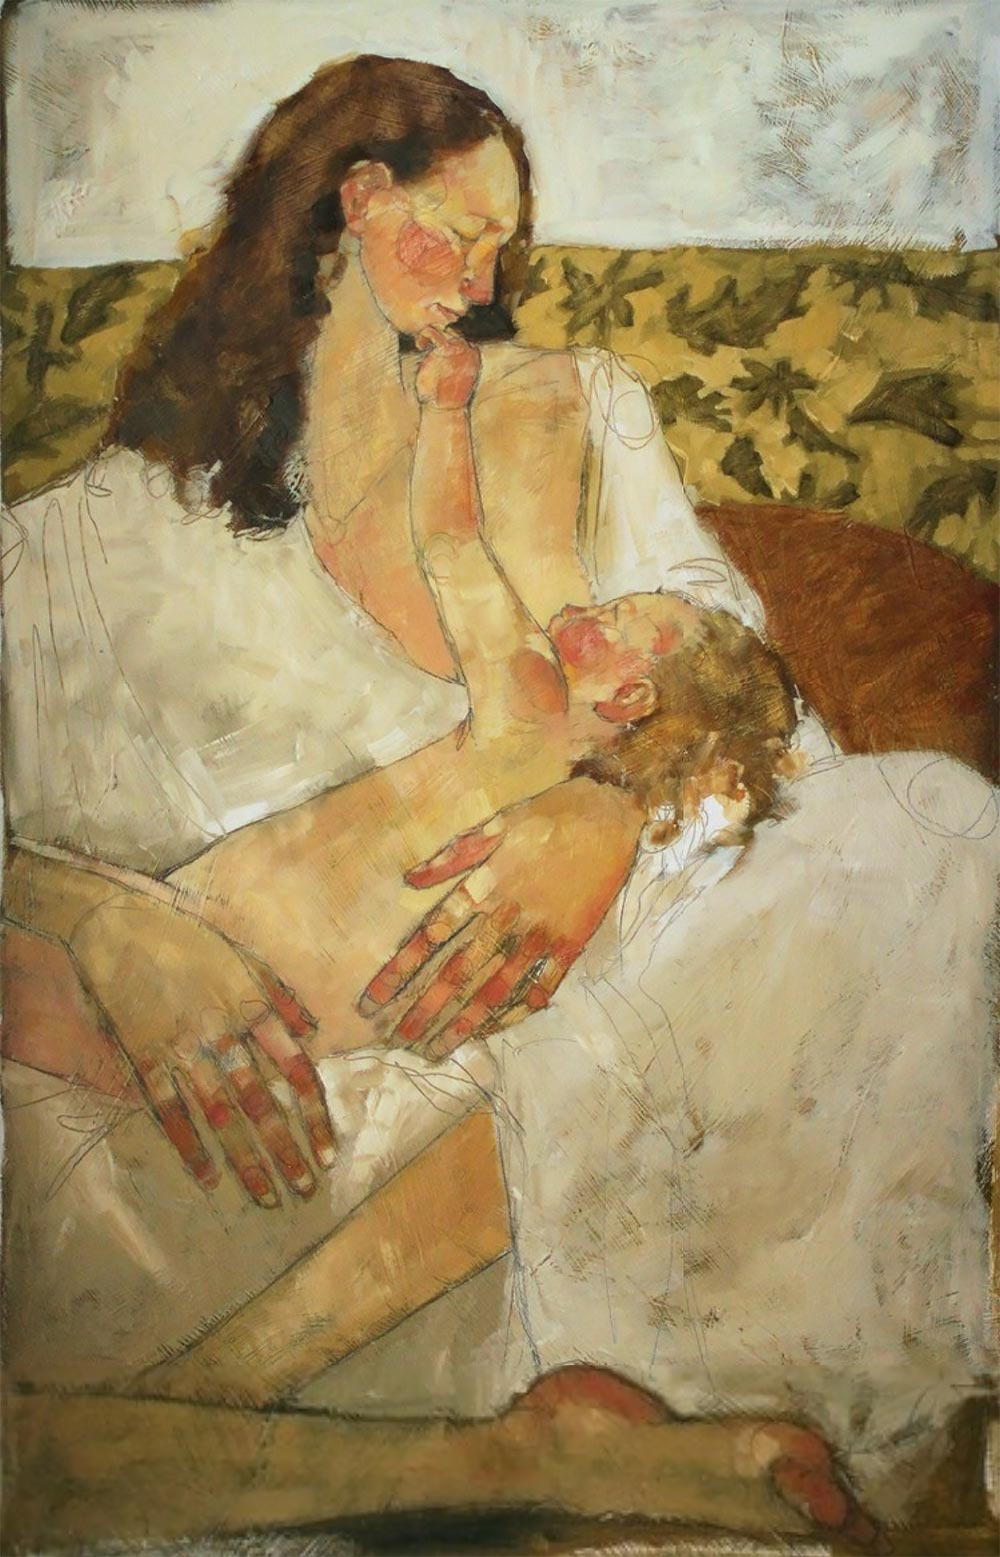 OLIVIA MAE PENDERGAST, Mother, 2015